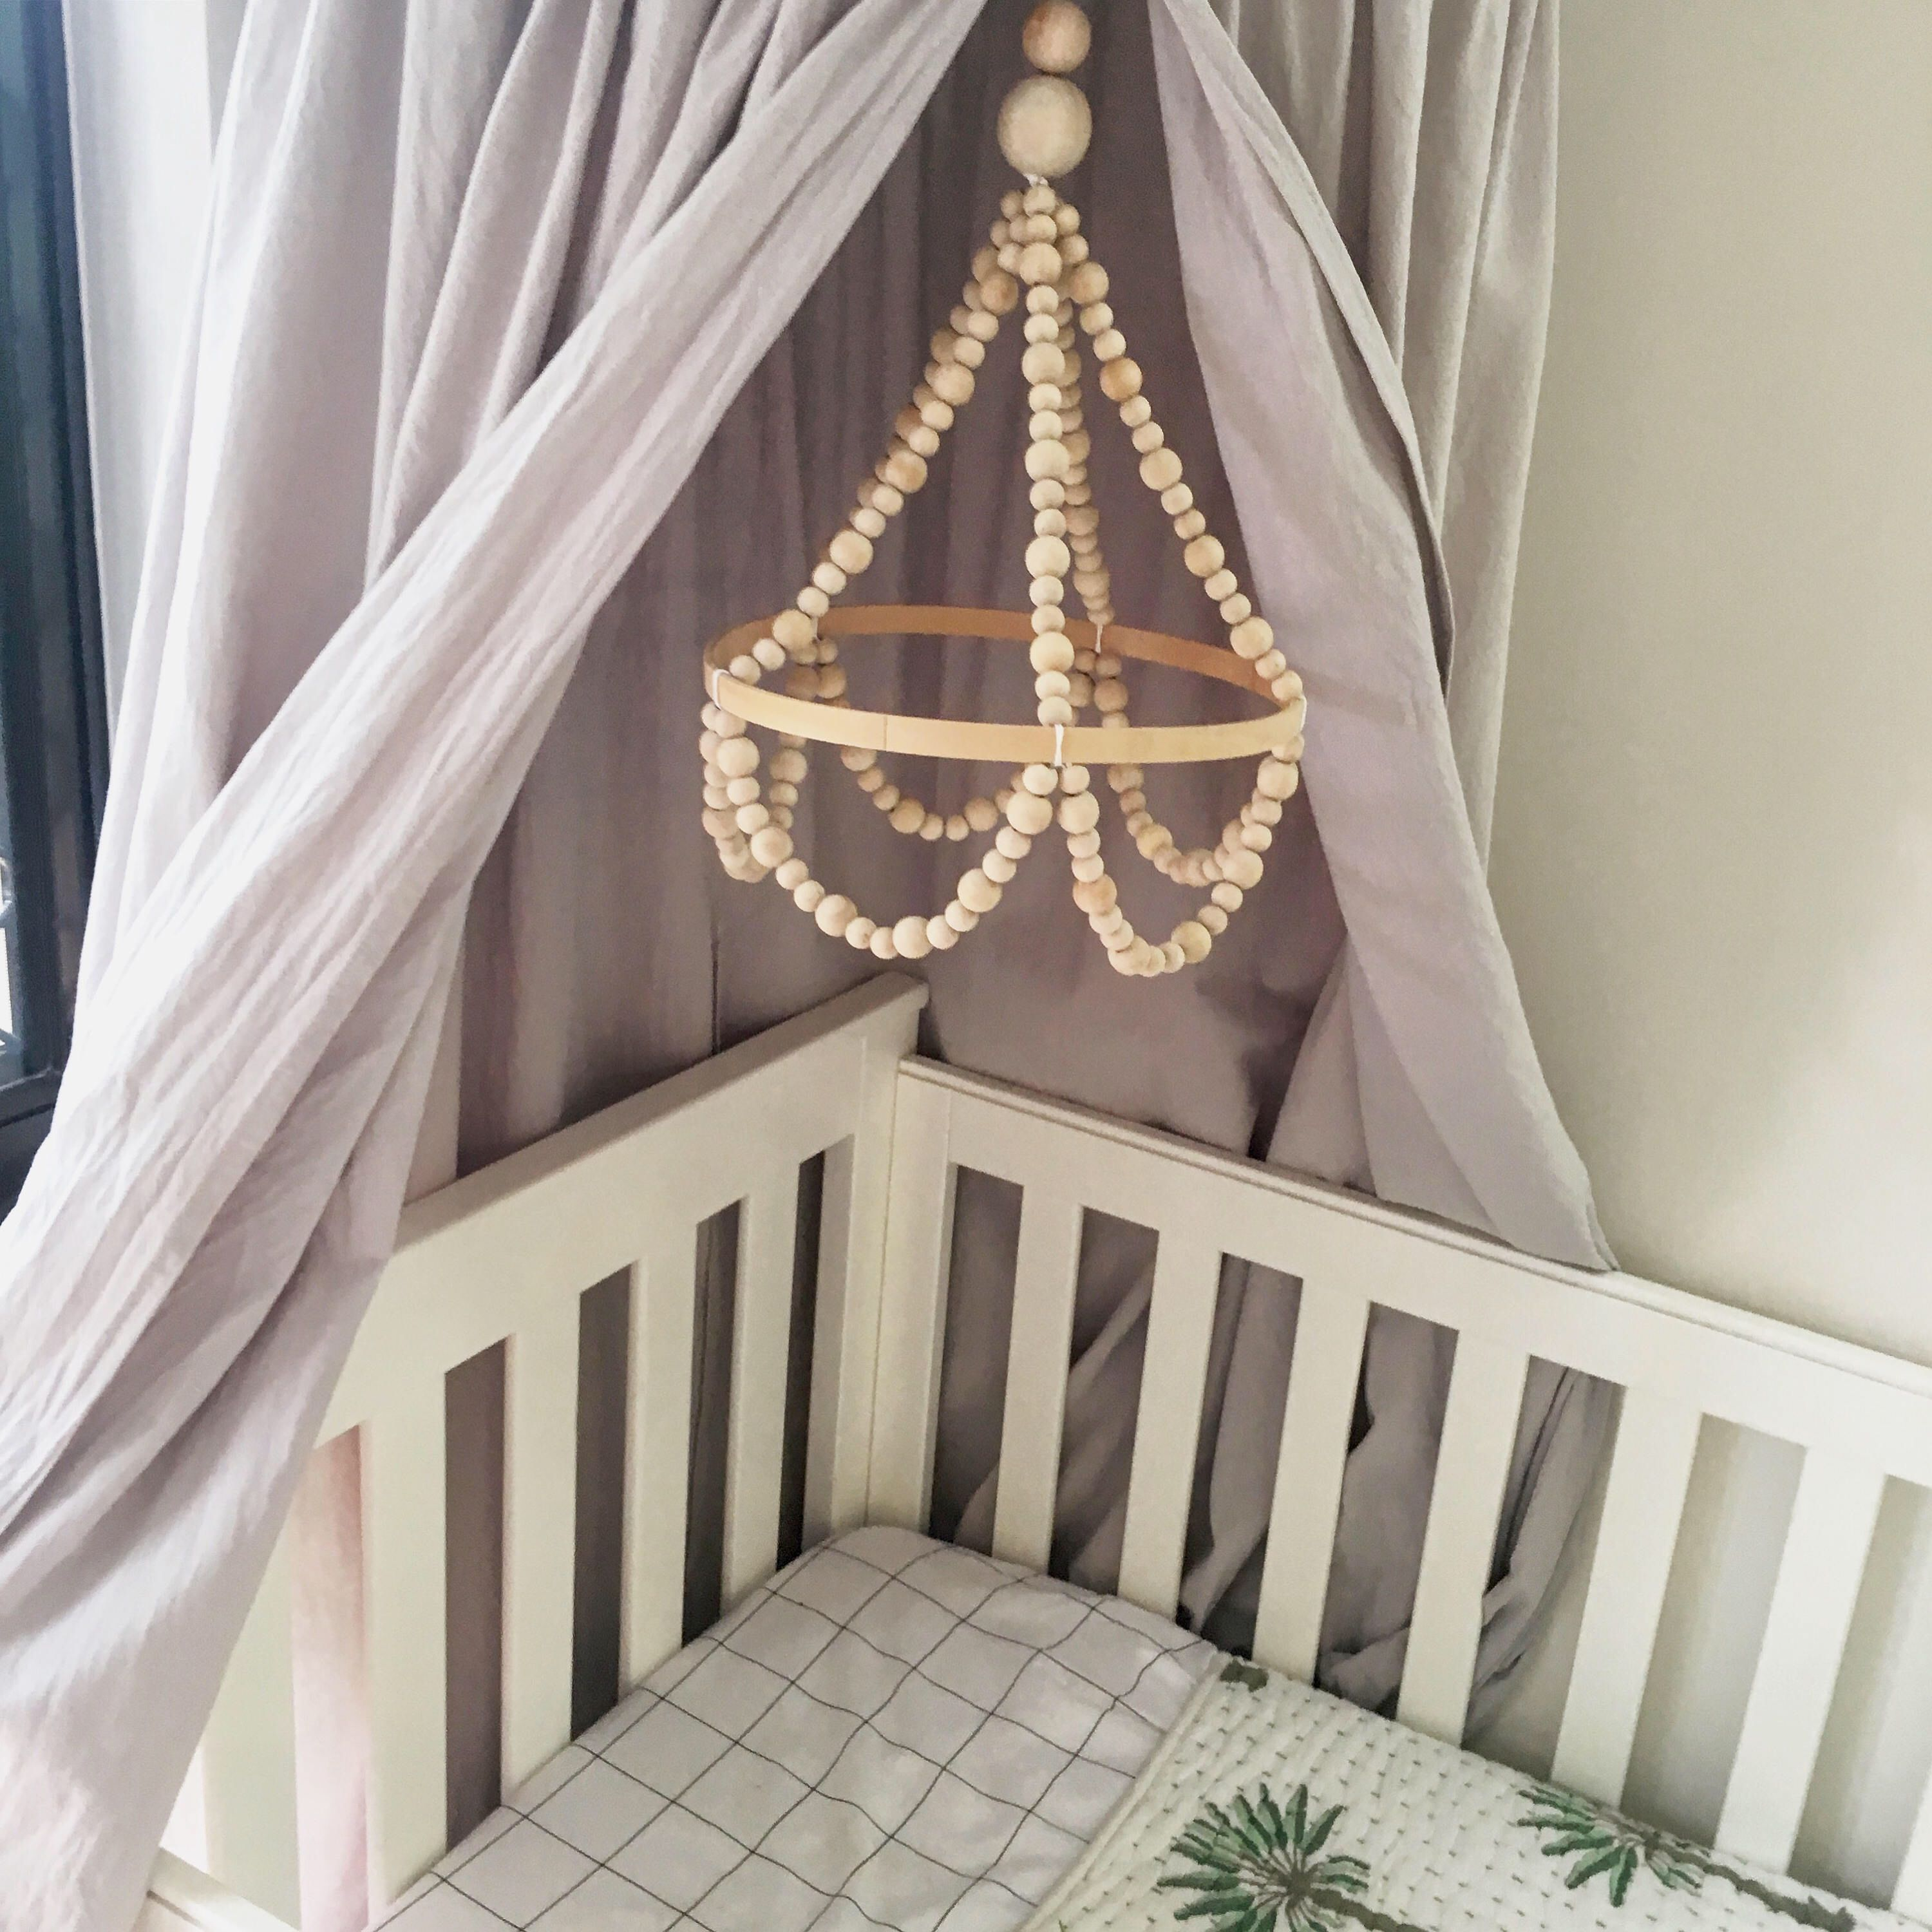 Small chandelier mobile beaded mobile boho nursery decor baby small chandelier mobile beaded mobile boho nursery decor baby mobile nursery mobile bohemian mobile cot mobile boho mobile aloadofball Images